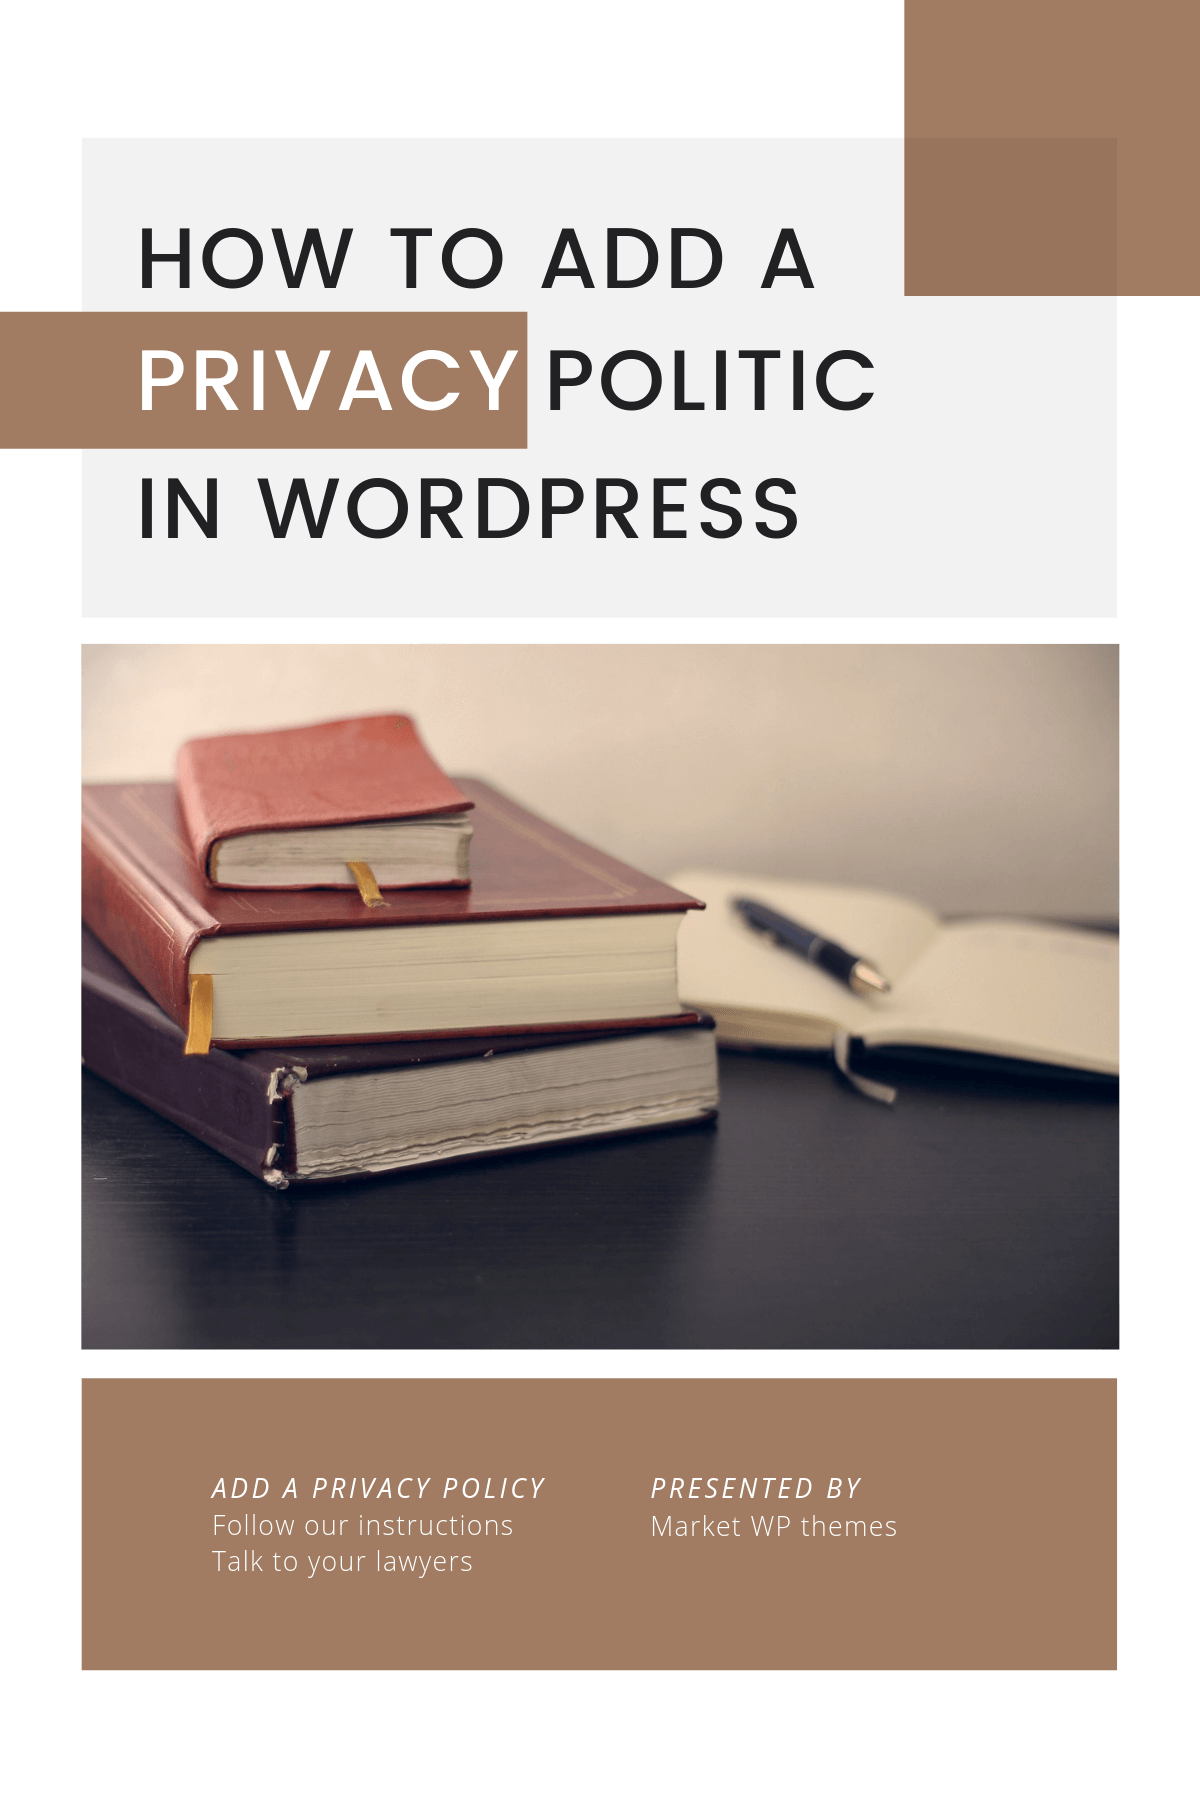 How To Add A Privacy Policy In WordPress